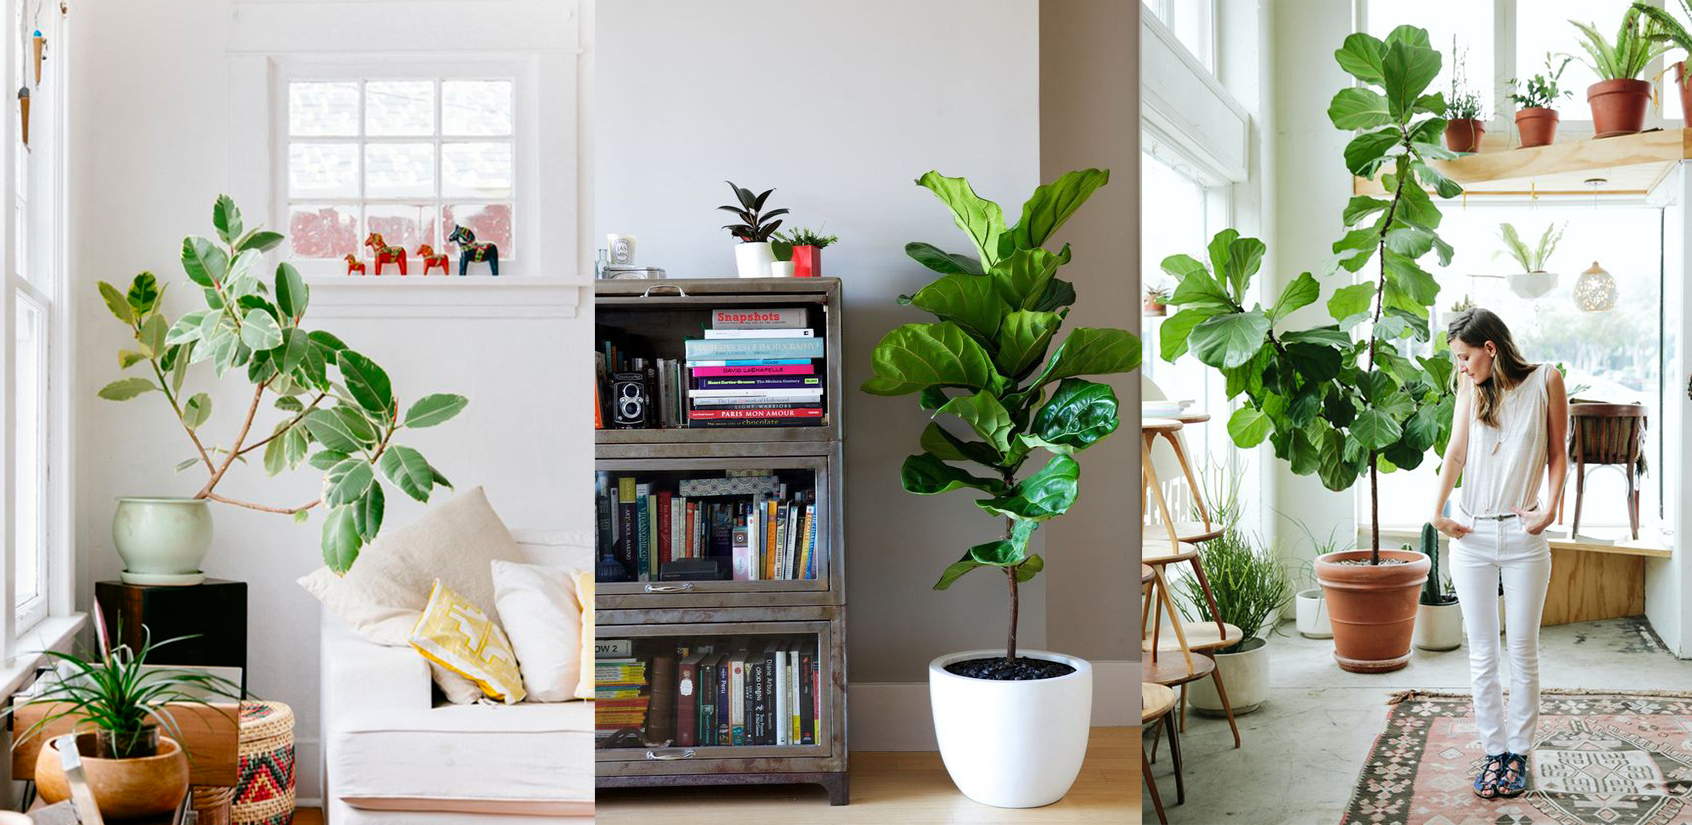 The Ficus is a plant which doesn't need much maintenance